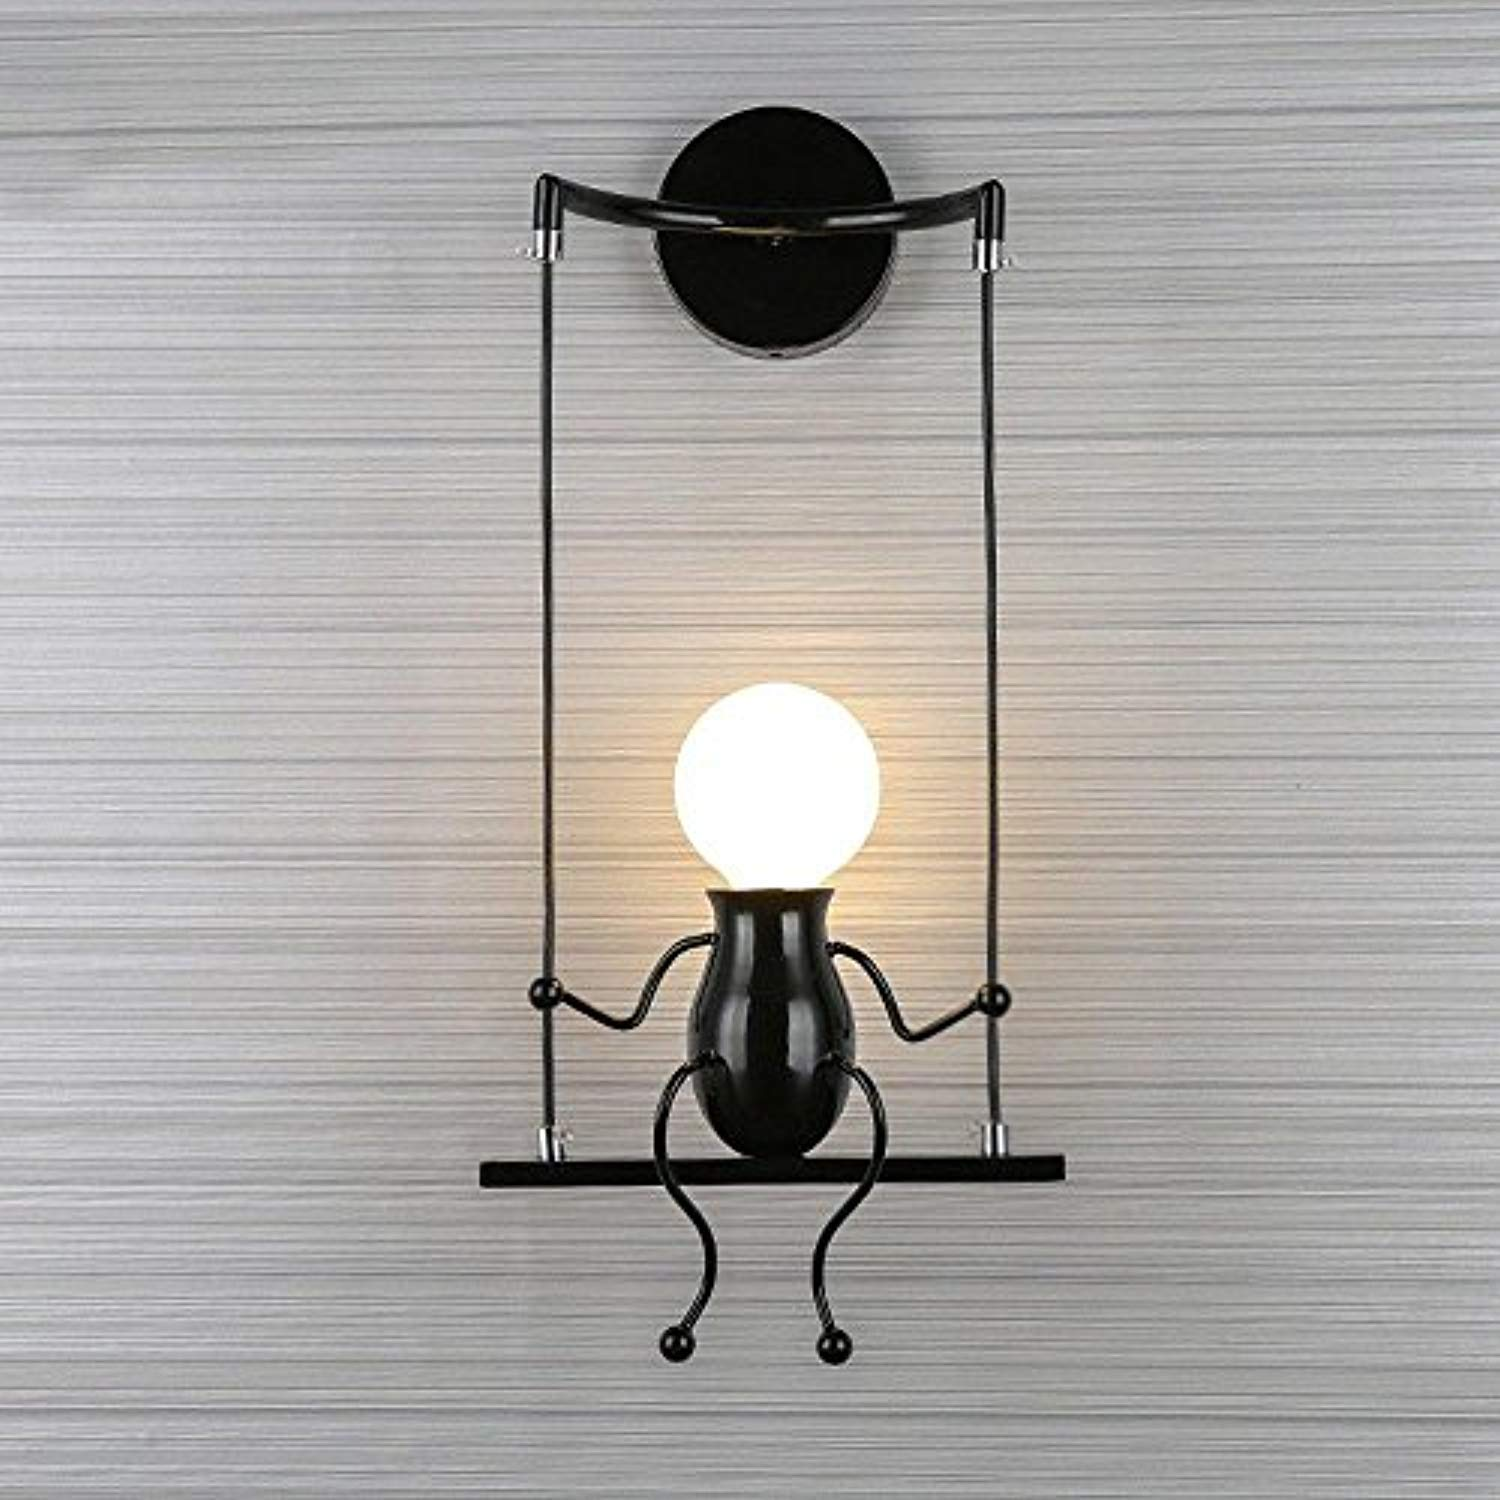 Wall Light Creative Simple Style Design Fixture Lighting Interior Decorative Lamp, Modern Lamp Simple Sconce Art Decoration-Black